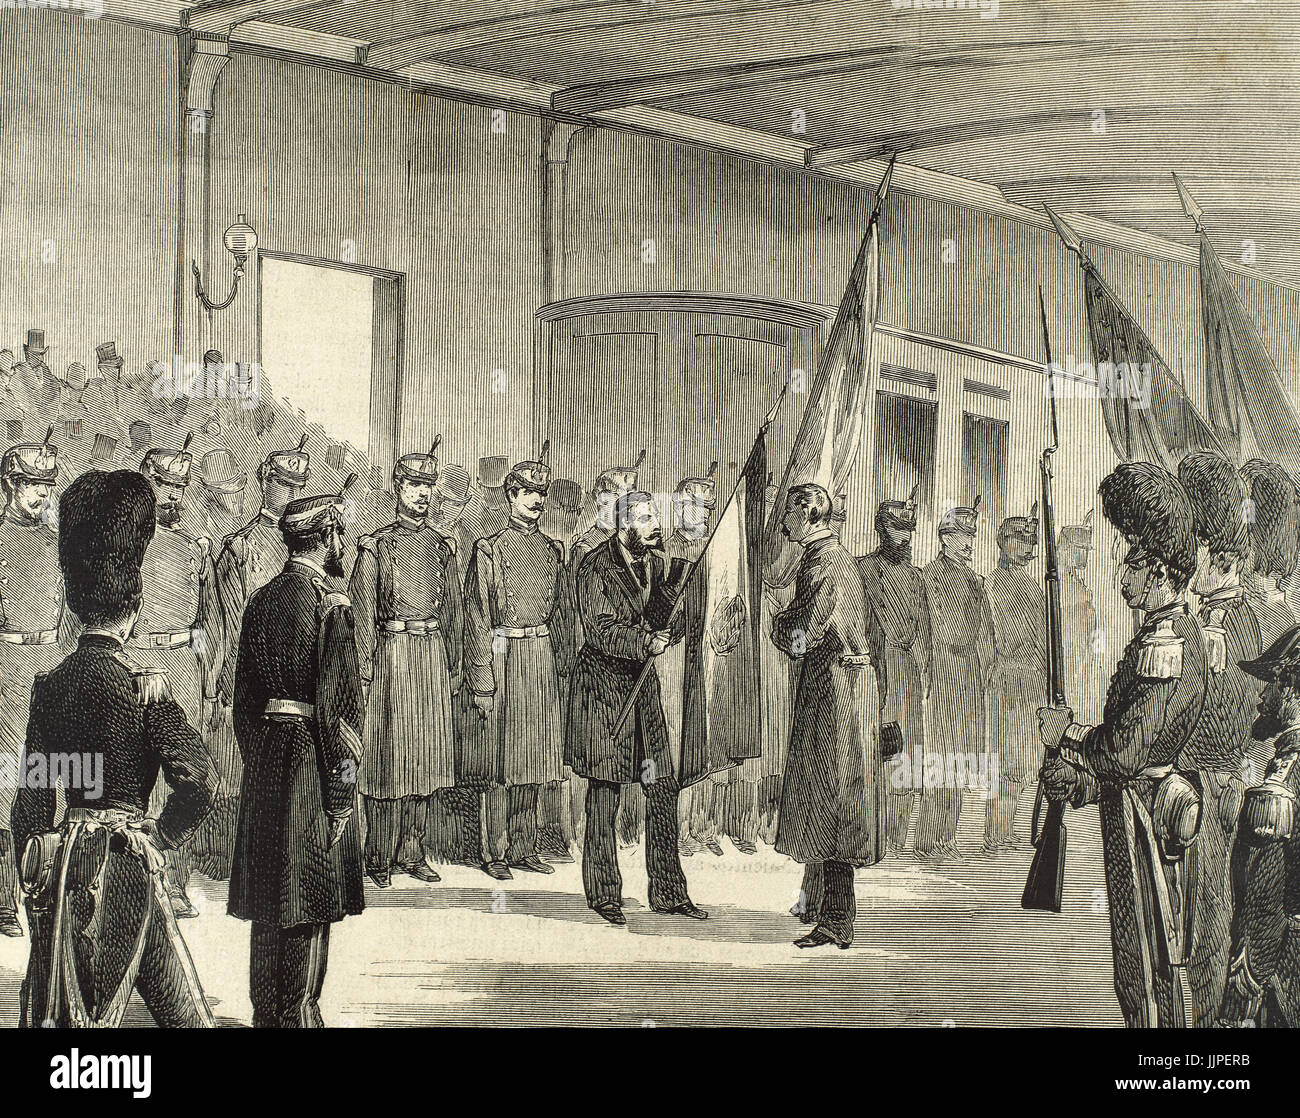 History of the United States. Philadelphia International Exposition. The arrival of the Spanish military engineers, - Stock Image